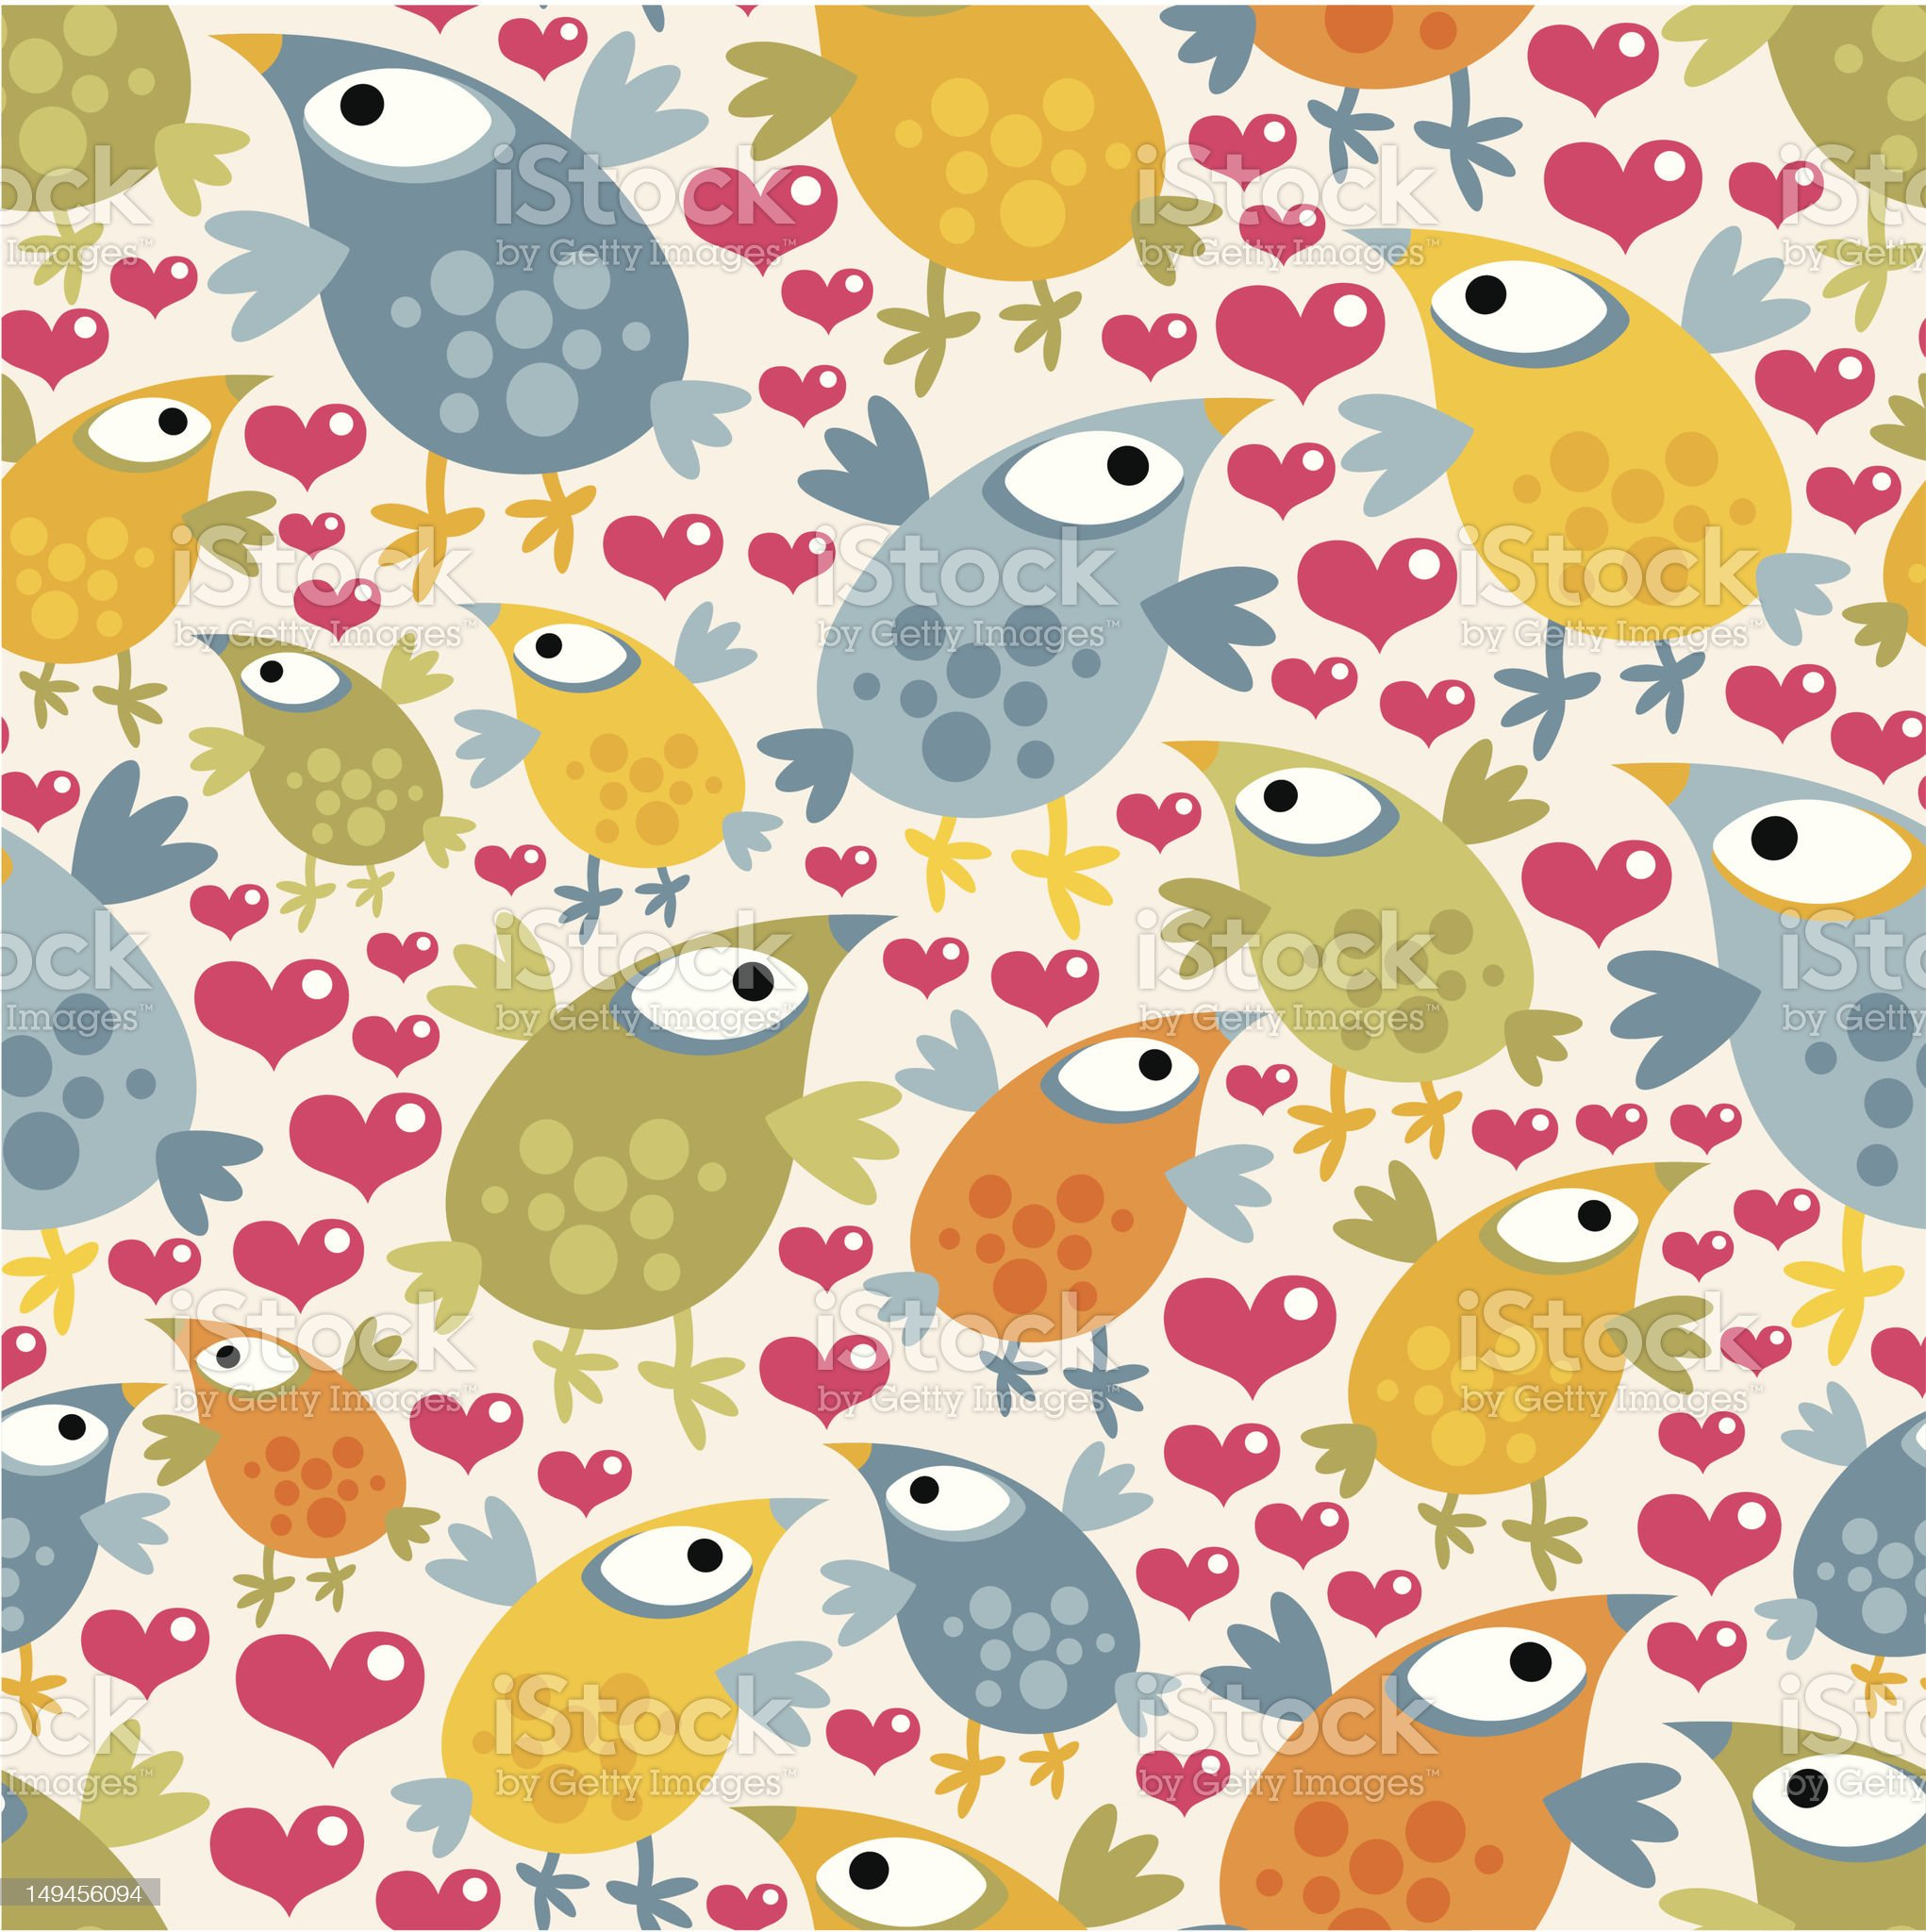 Seamless pattern with cute birds and hearts. royalty-free stock vector art